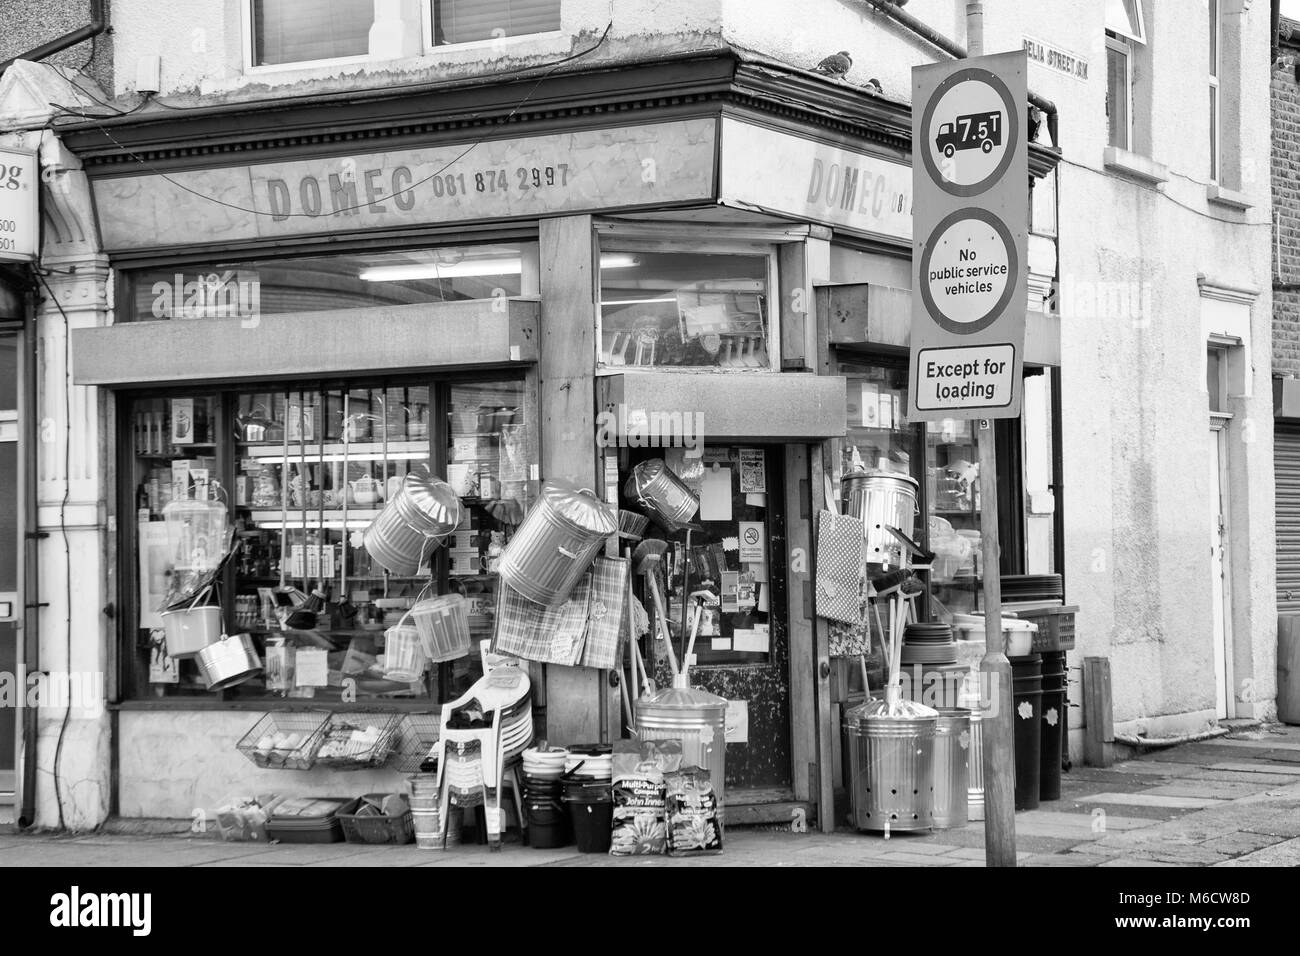 Old Hardware Shop in Tooting, South London, England, UK; - Stock Image